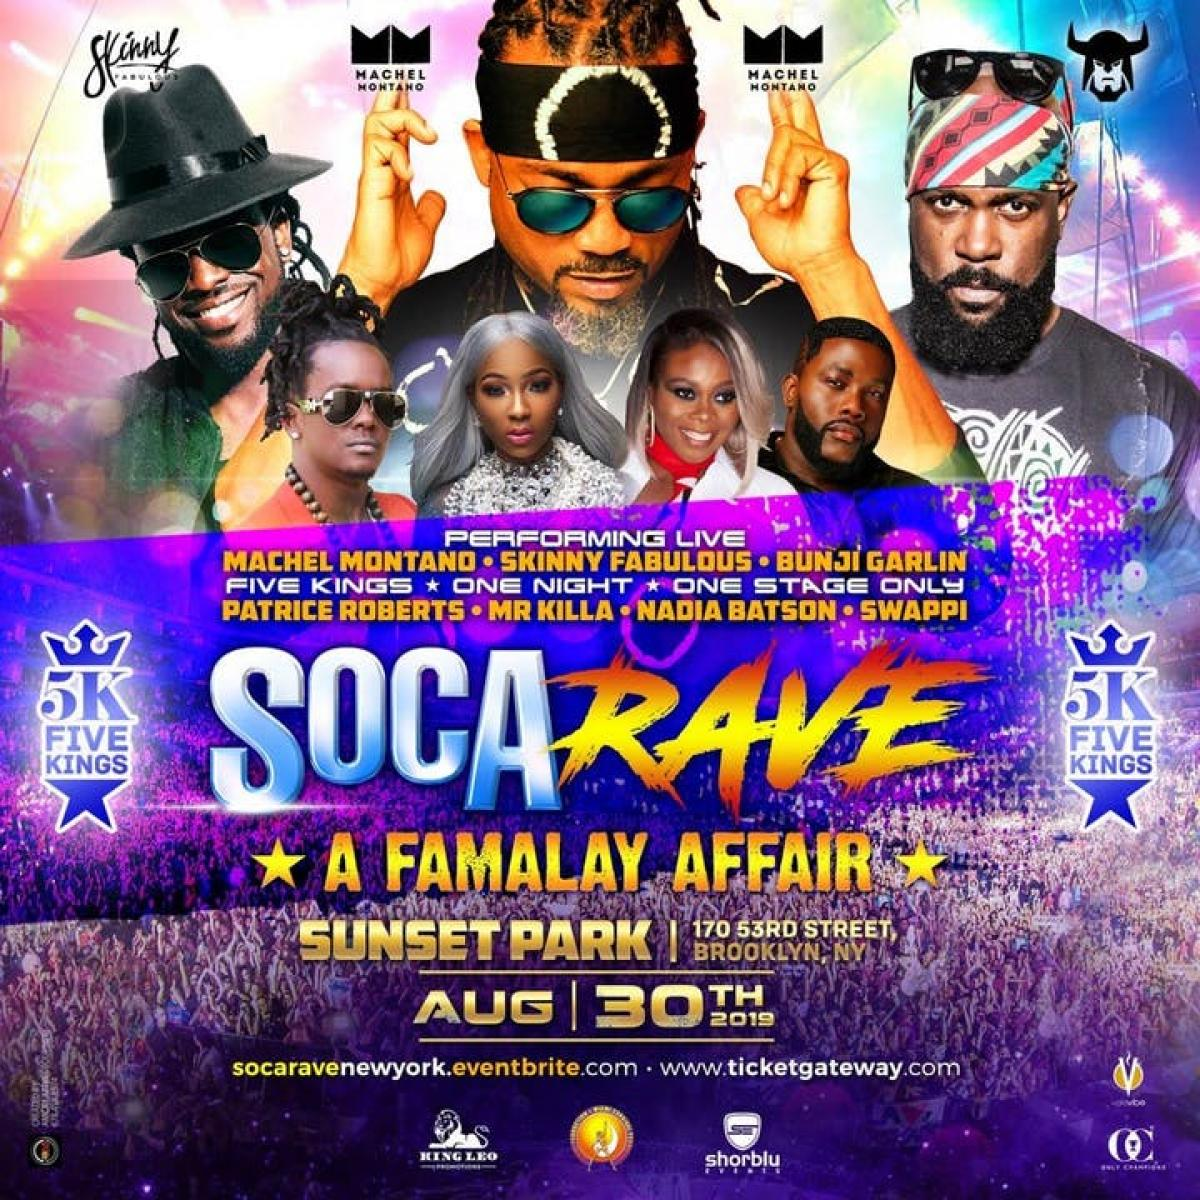 Soca Rave flyer or graphic.